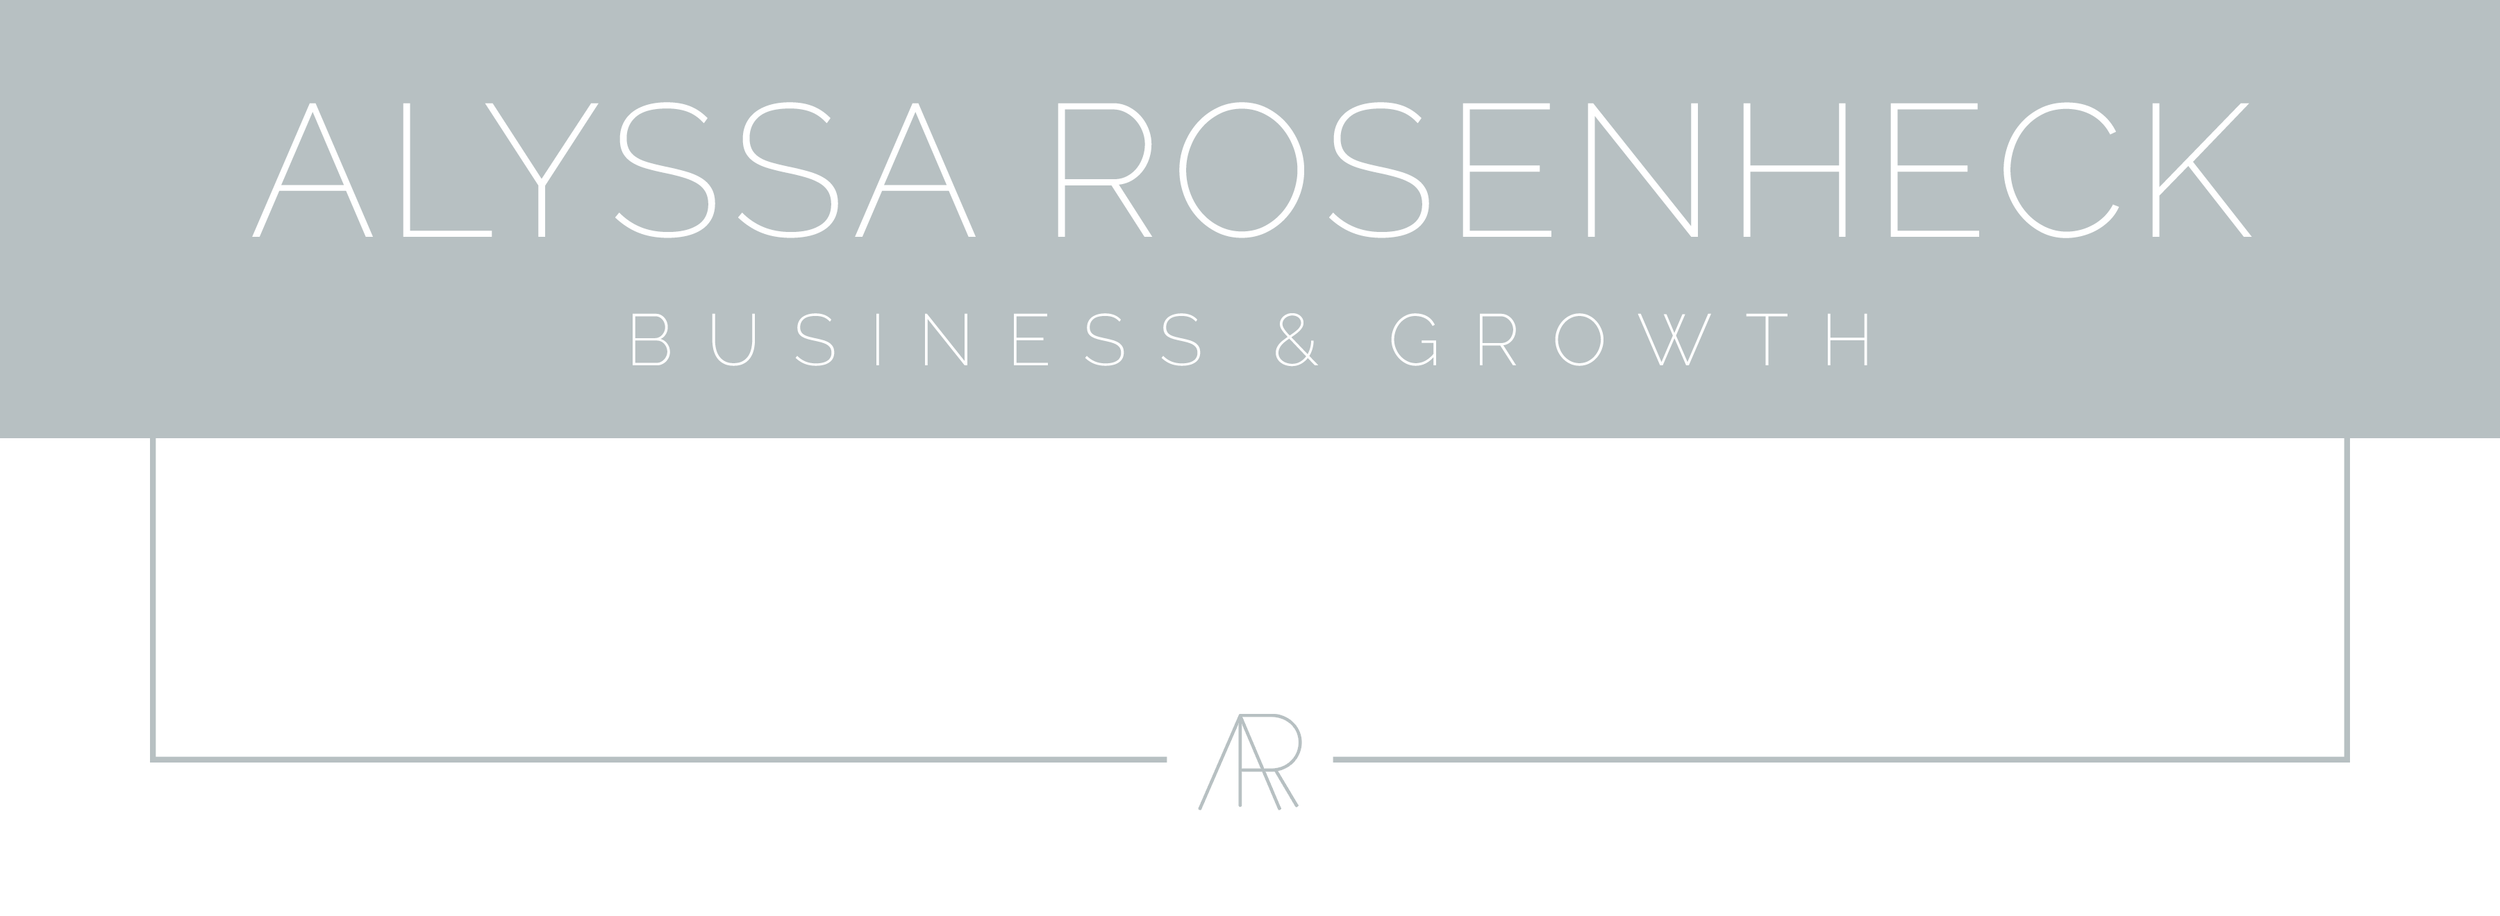 Alyssa Rosenheck Features - BizGrowth Narrow.jpg